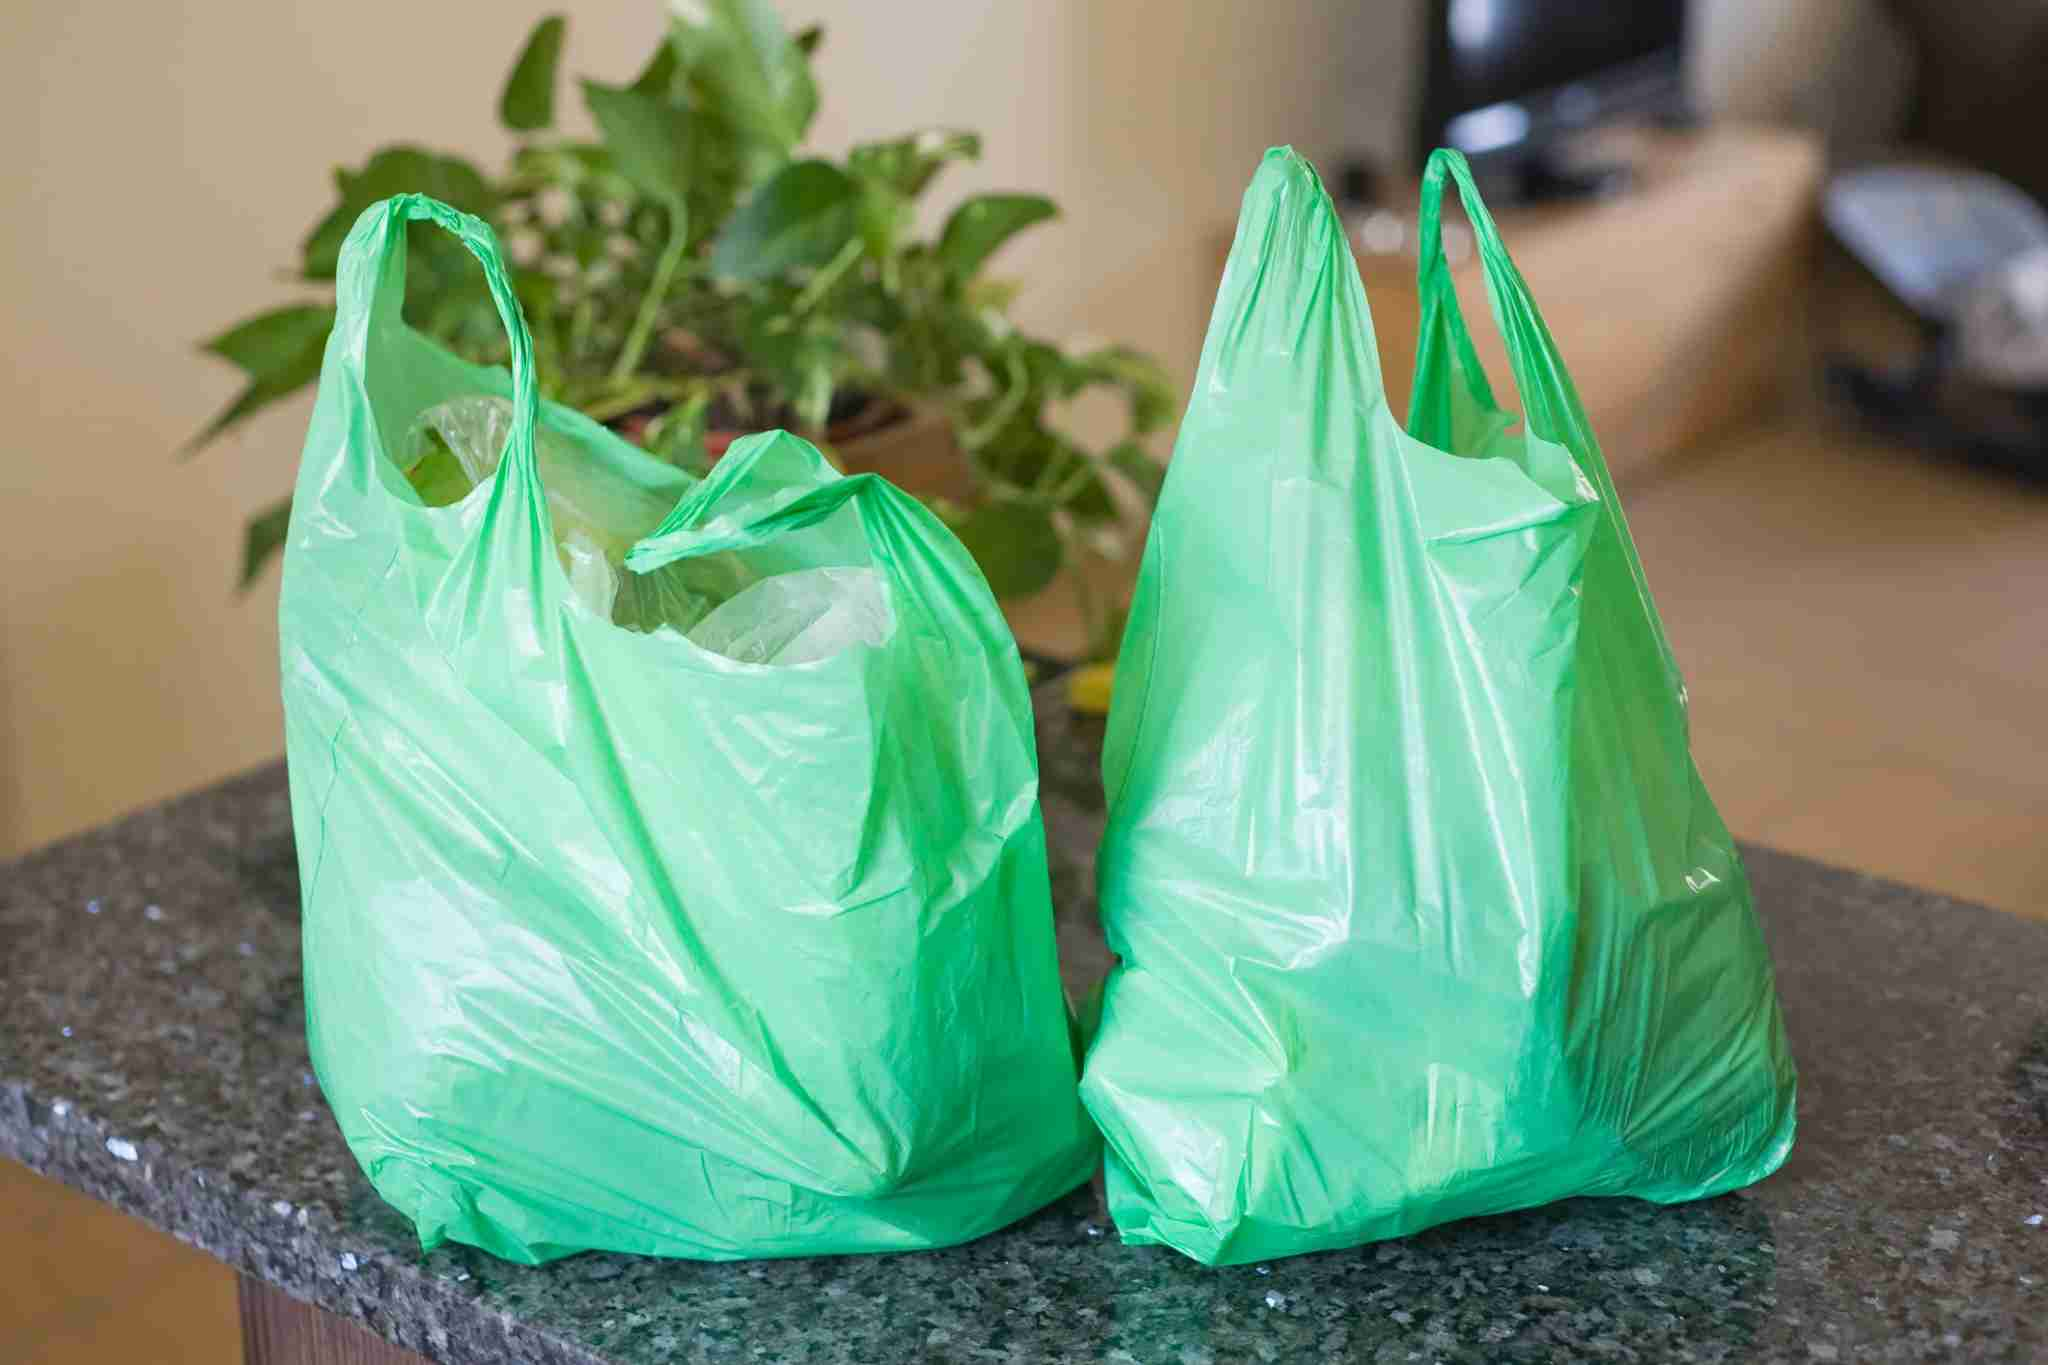 Green plastic bags on kitchen worktop.Alex Bramwell via Getty Images.